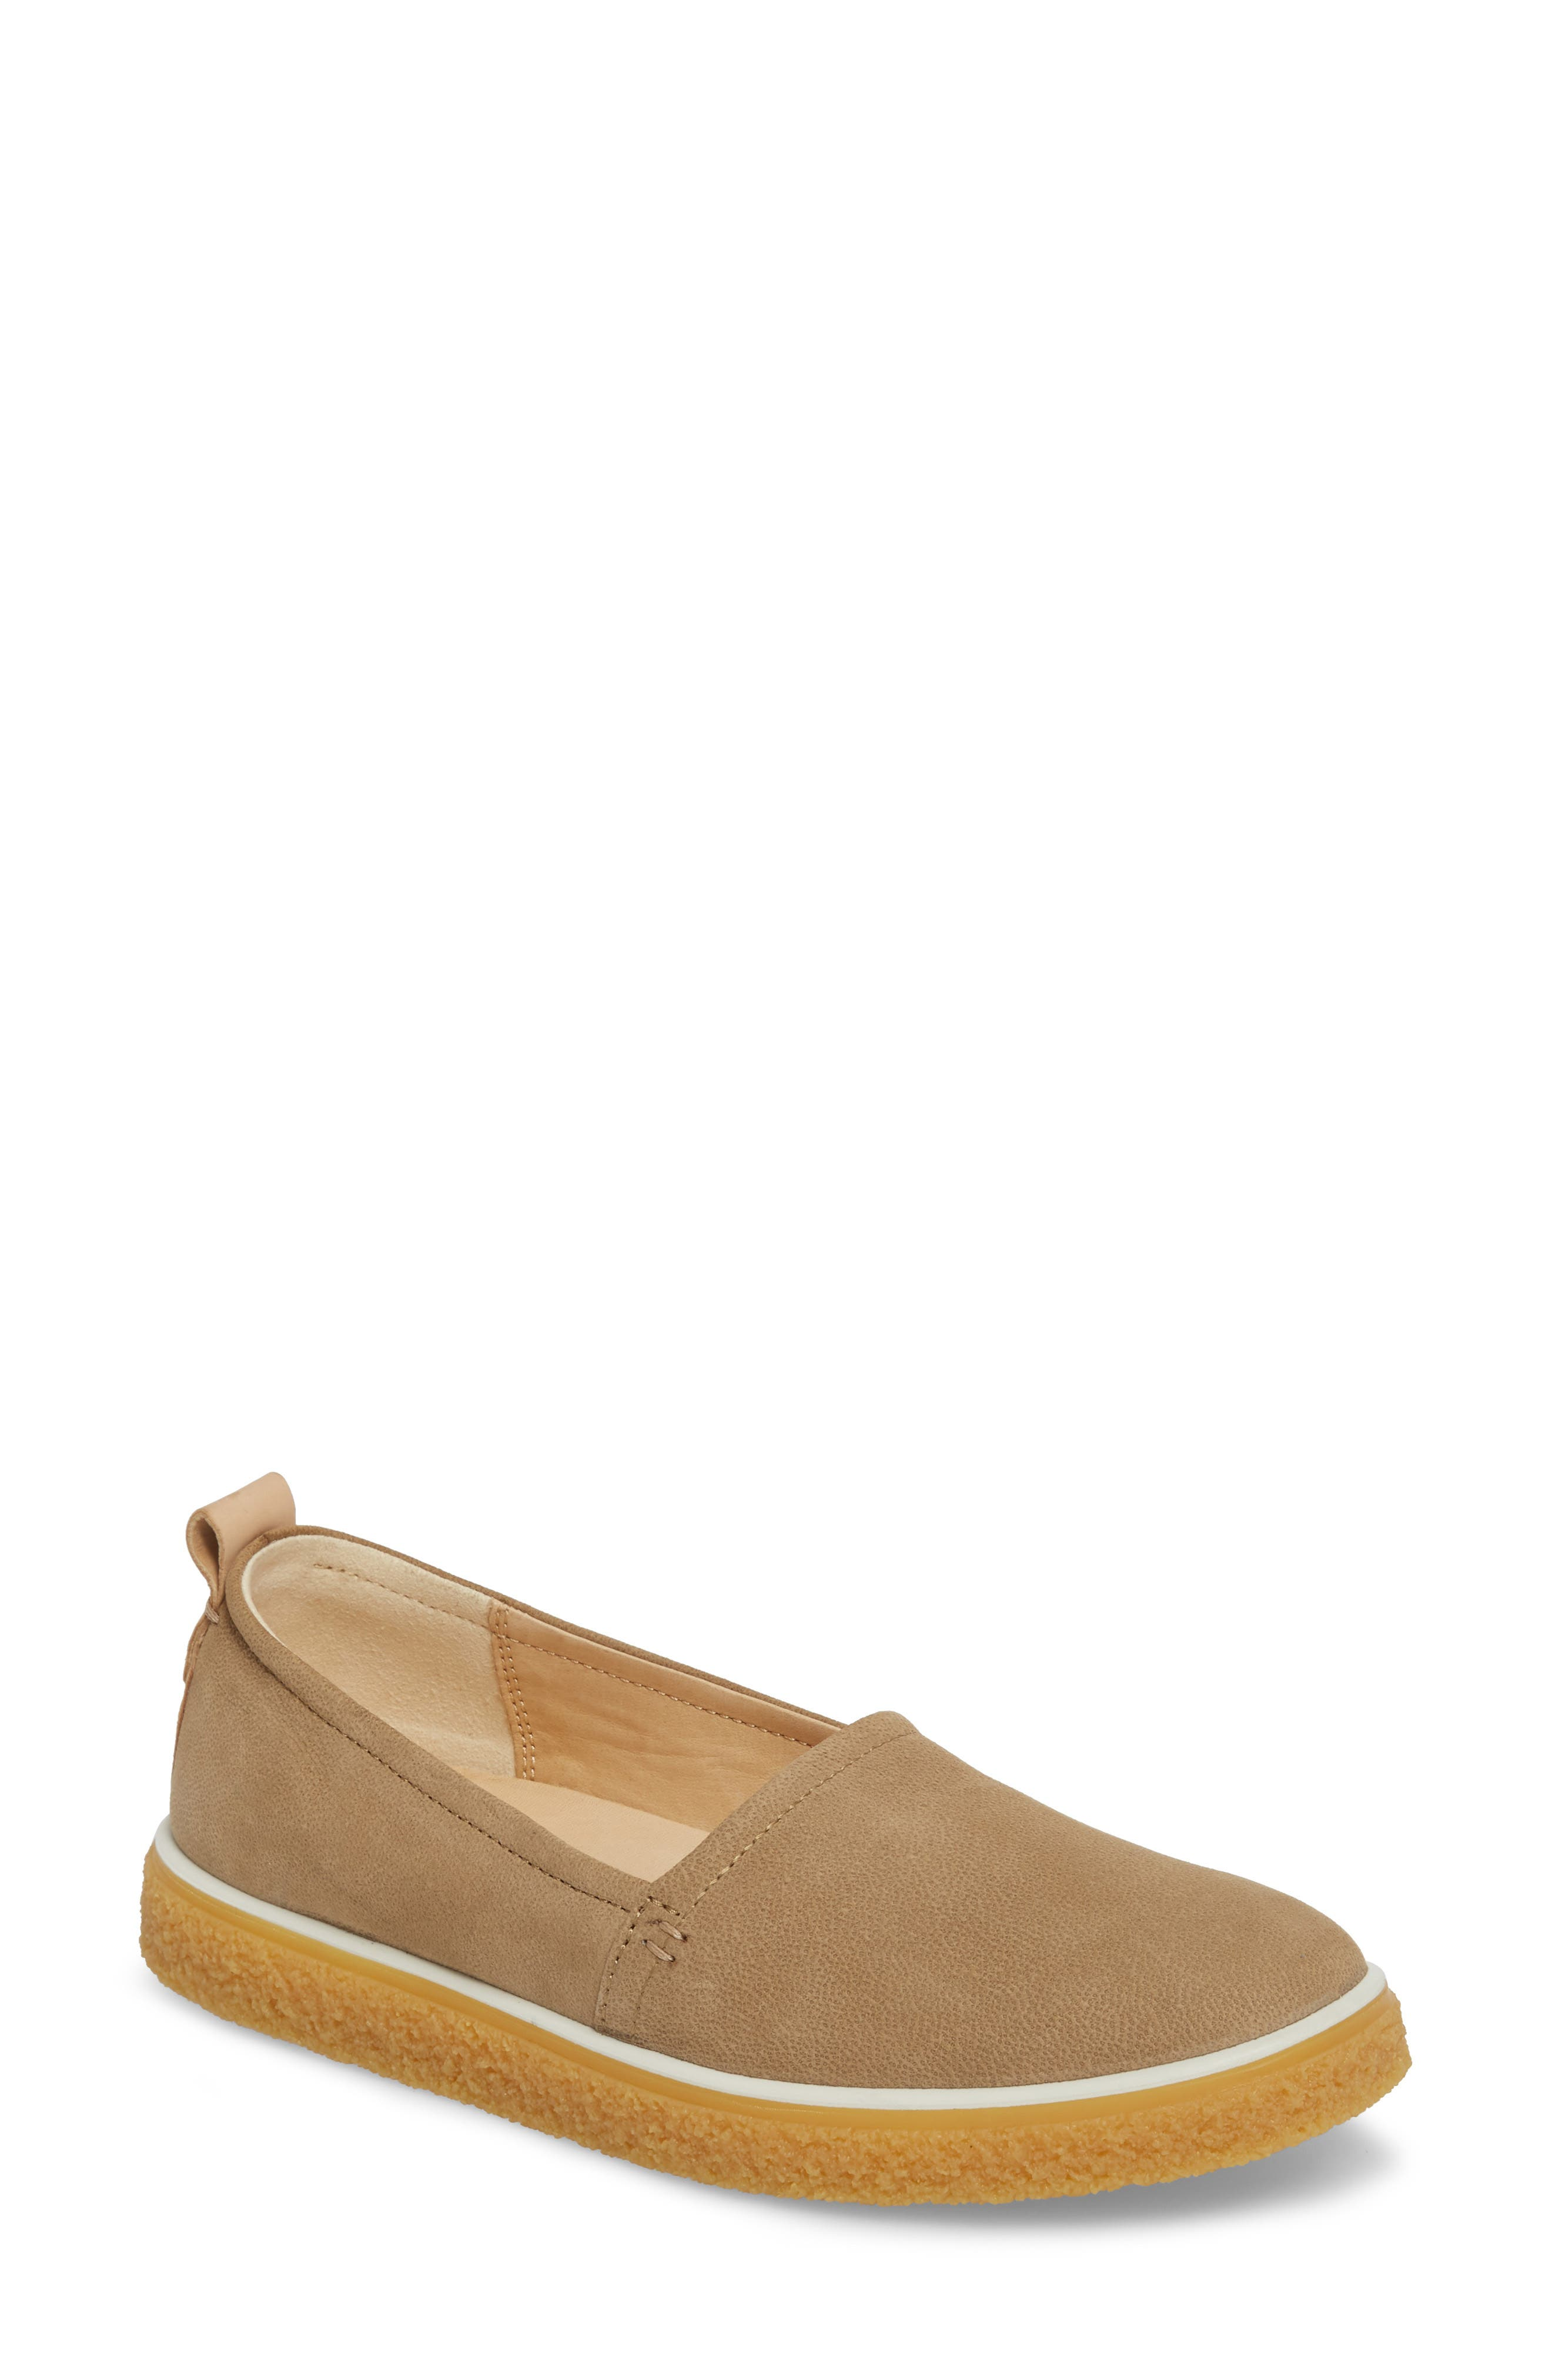 Crepetray Slip-On,                         Main,                         color, 200